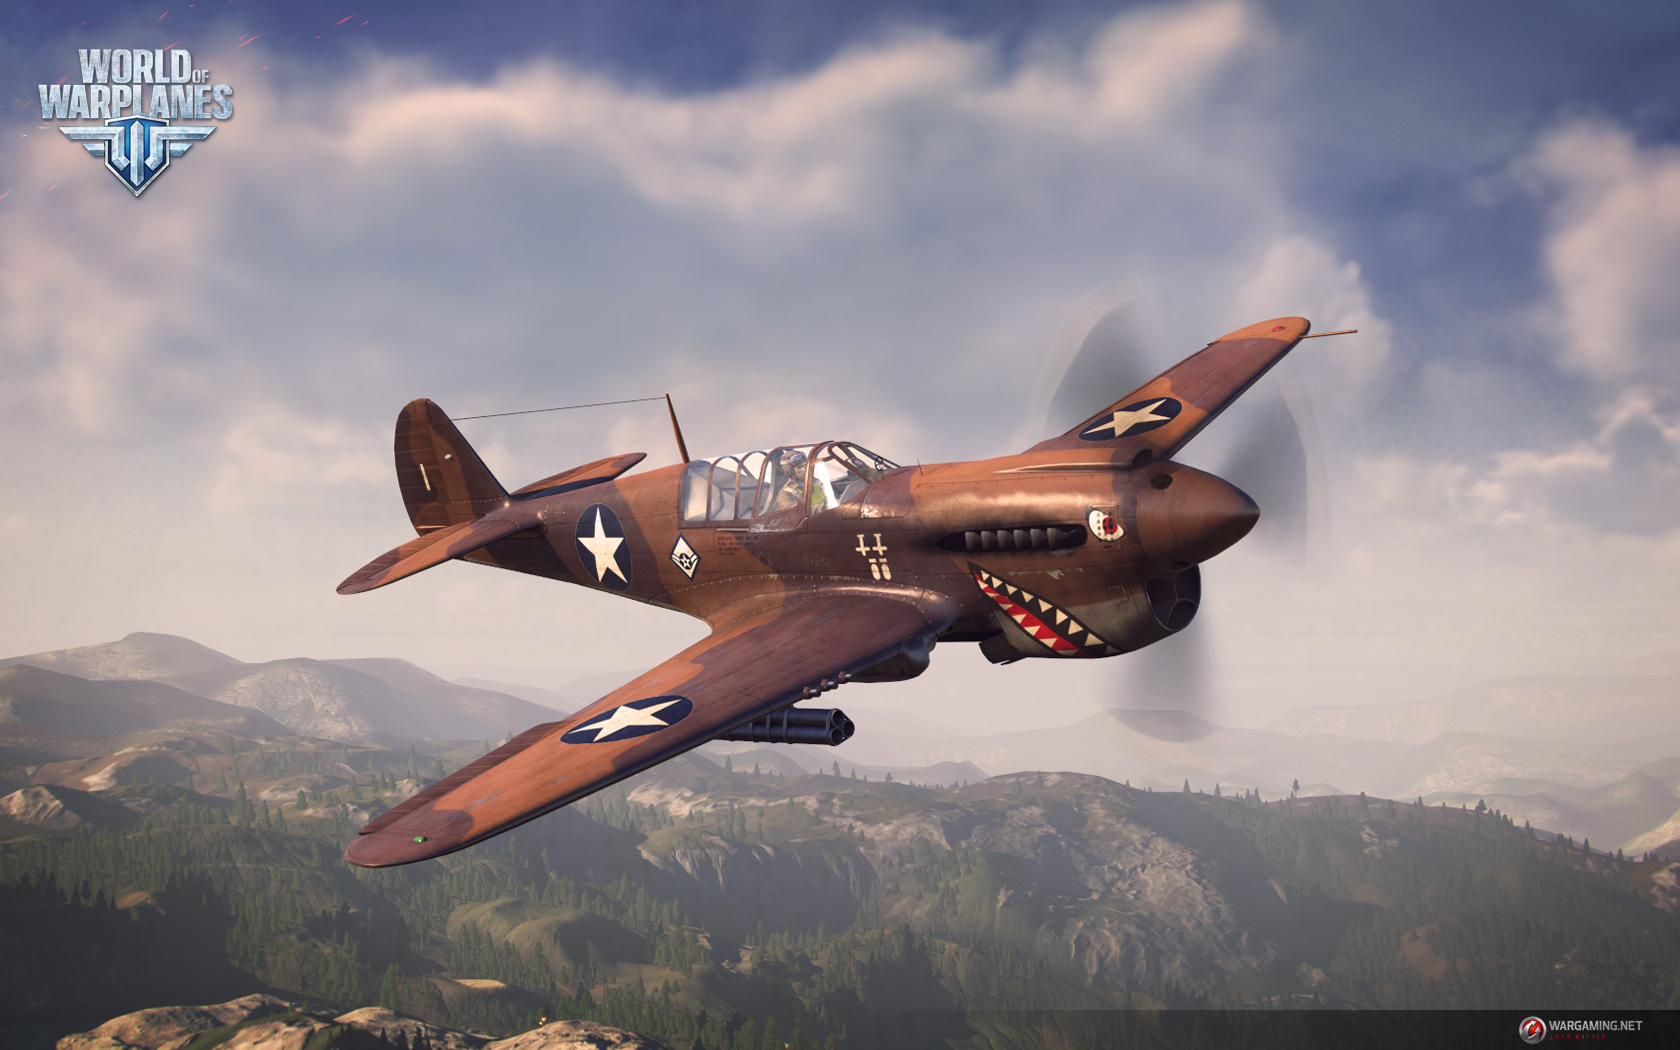 Cool Video Game Wallpapers Hd Release Date Announced World Of Warplanes